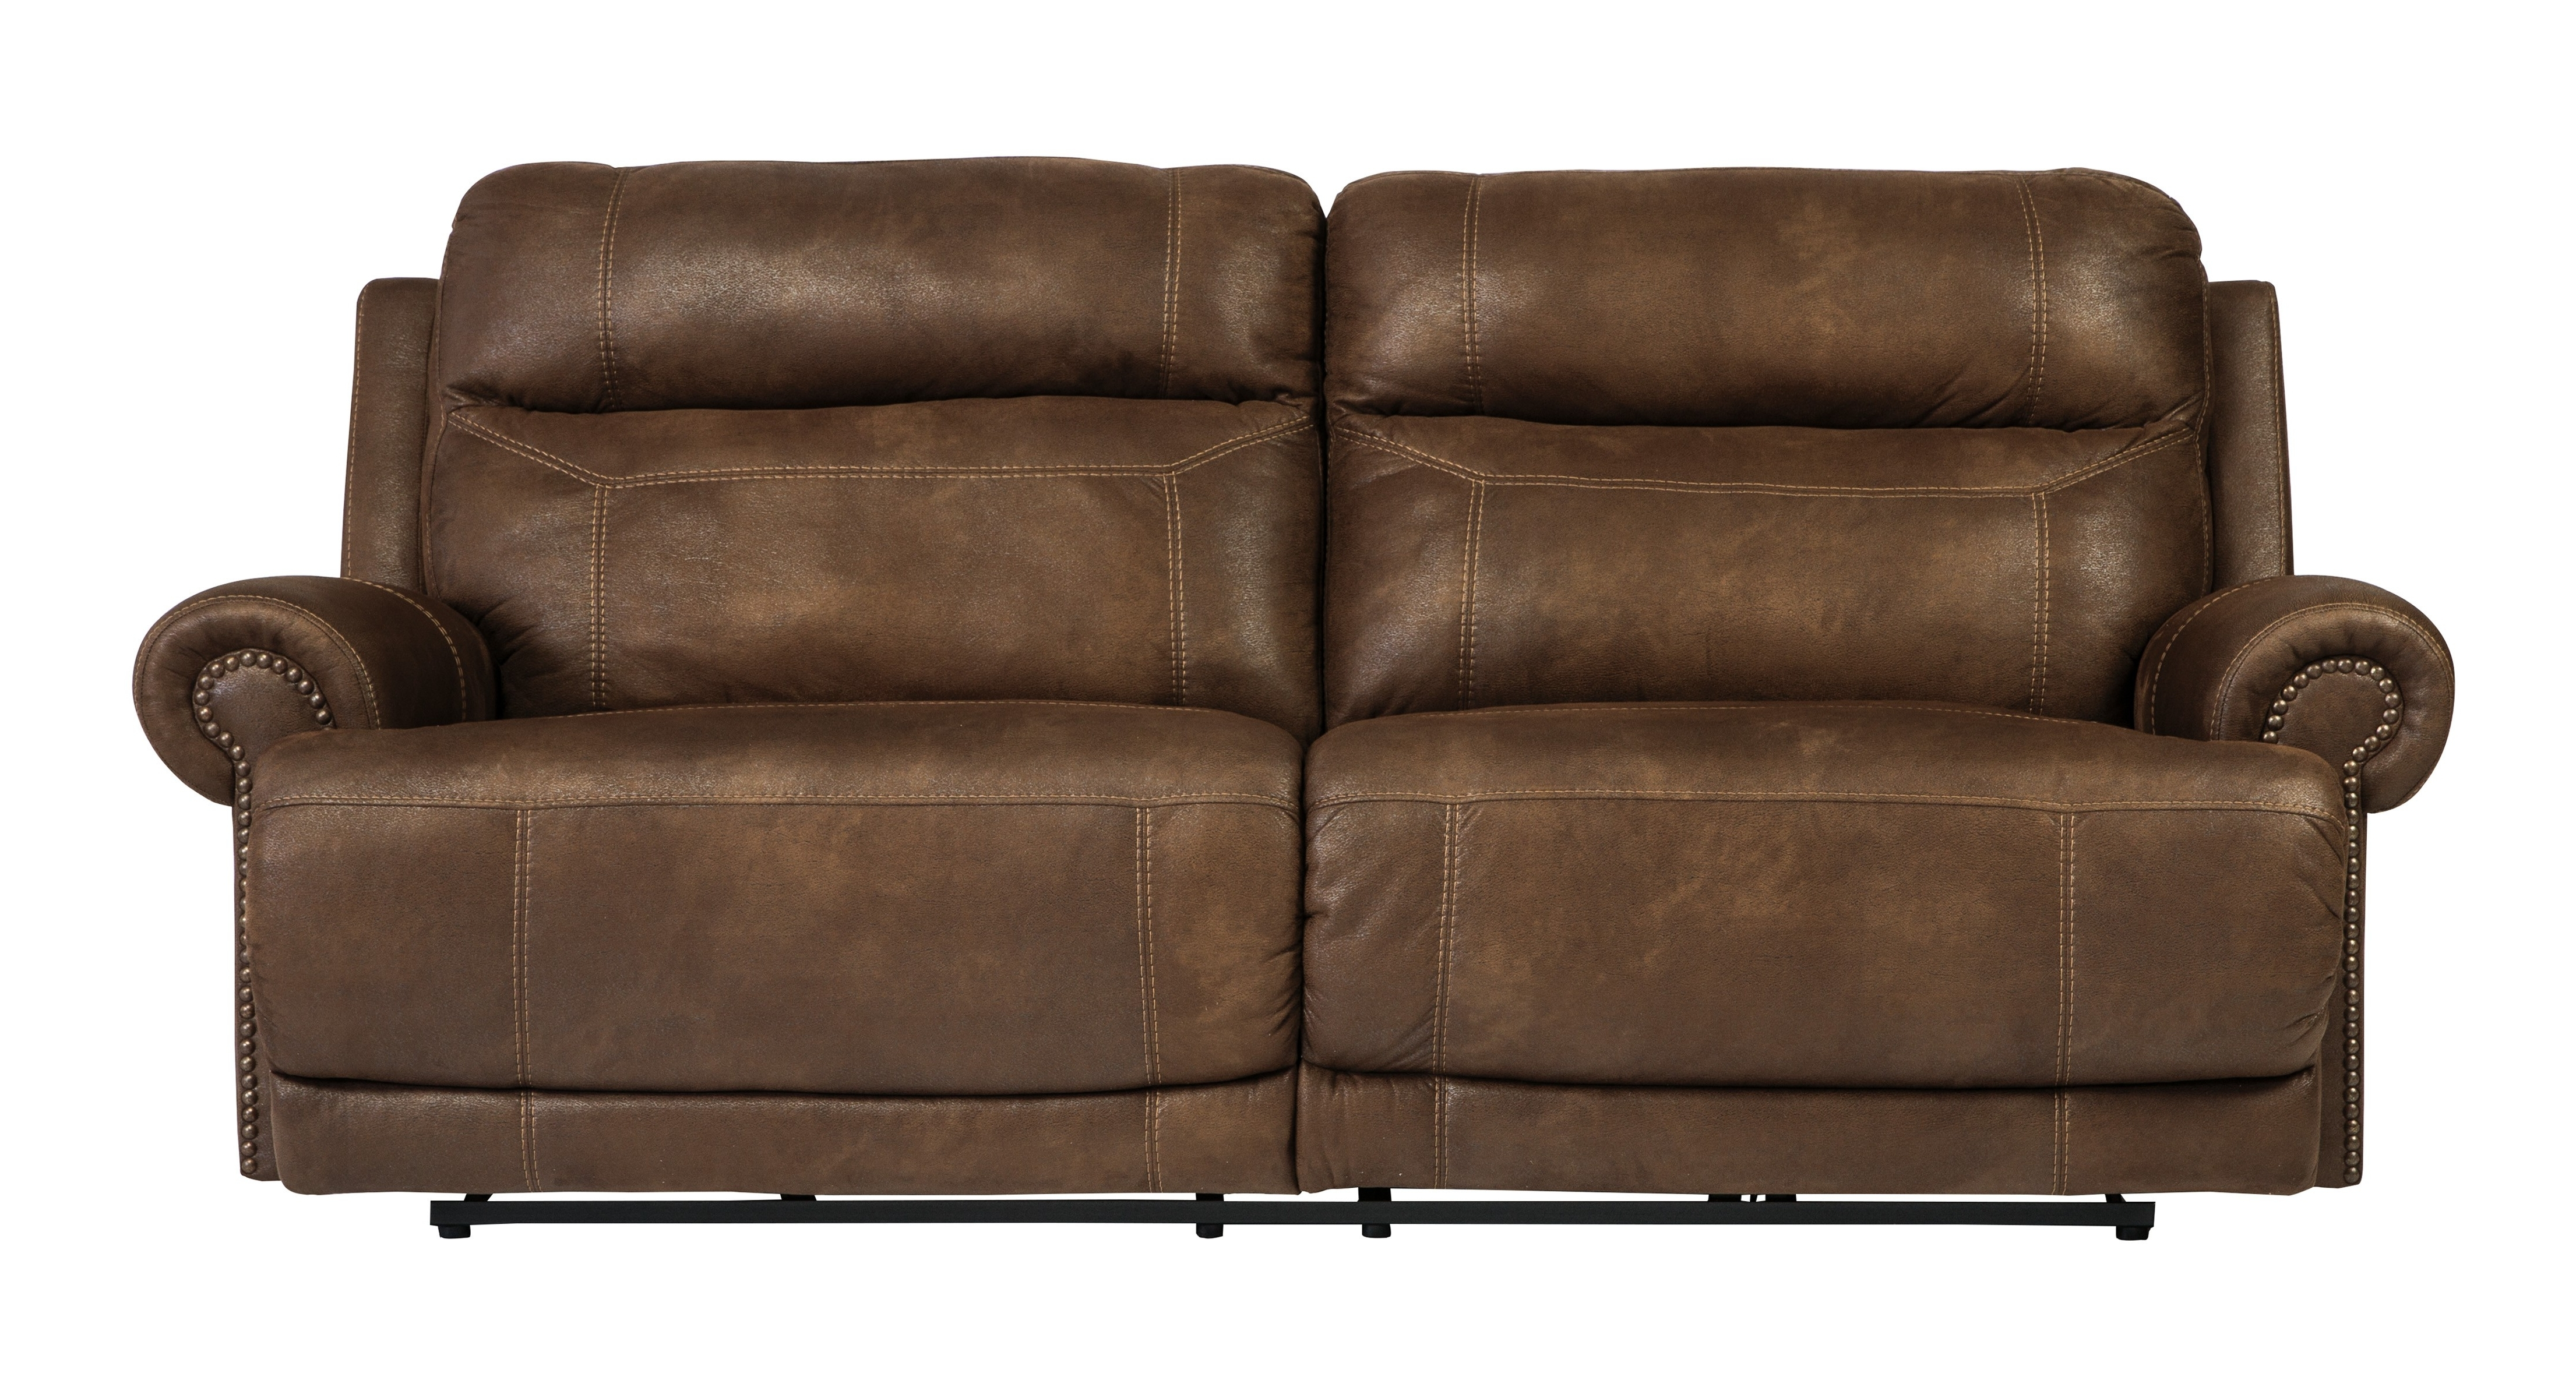 2 Seat Recliner Sofas Inside Widely Used Buy Austere – Brown 2 Seat Reclining Sofasignature Design From (View 1 of 20)